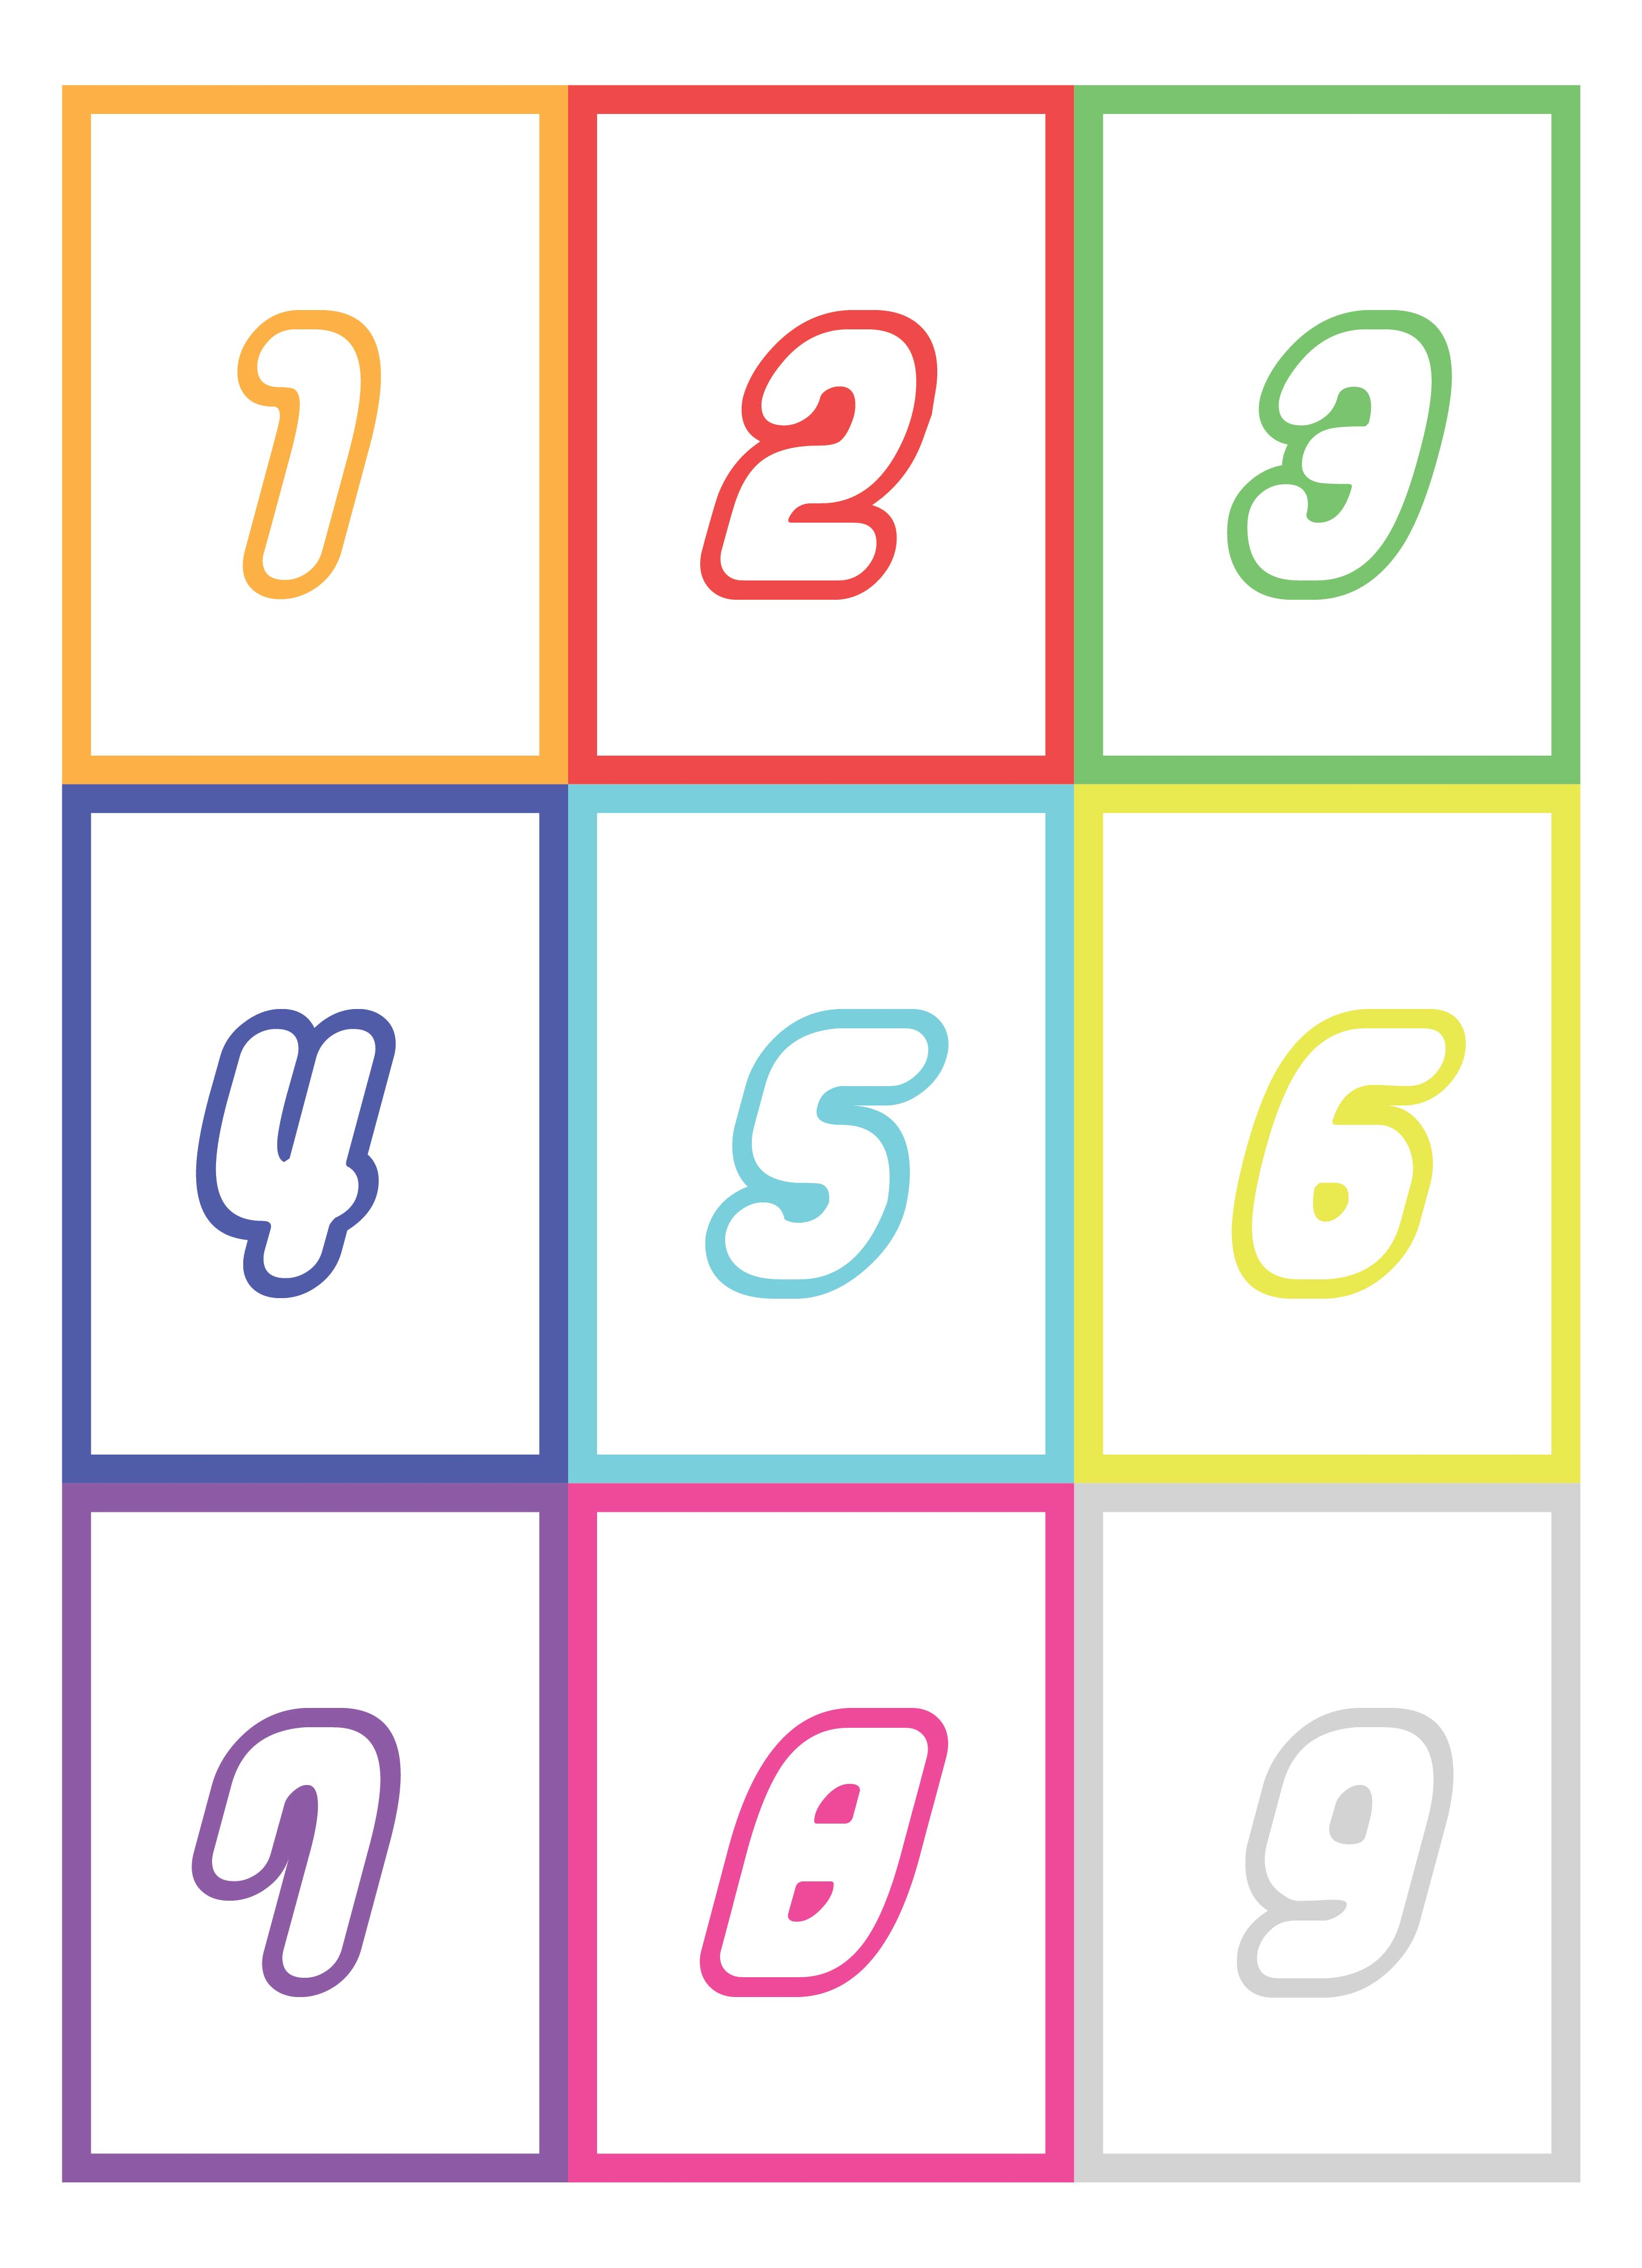 Printable Number Flash Card 1